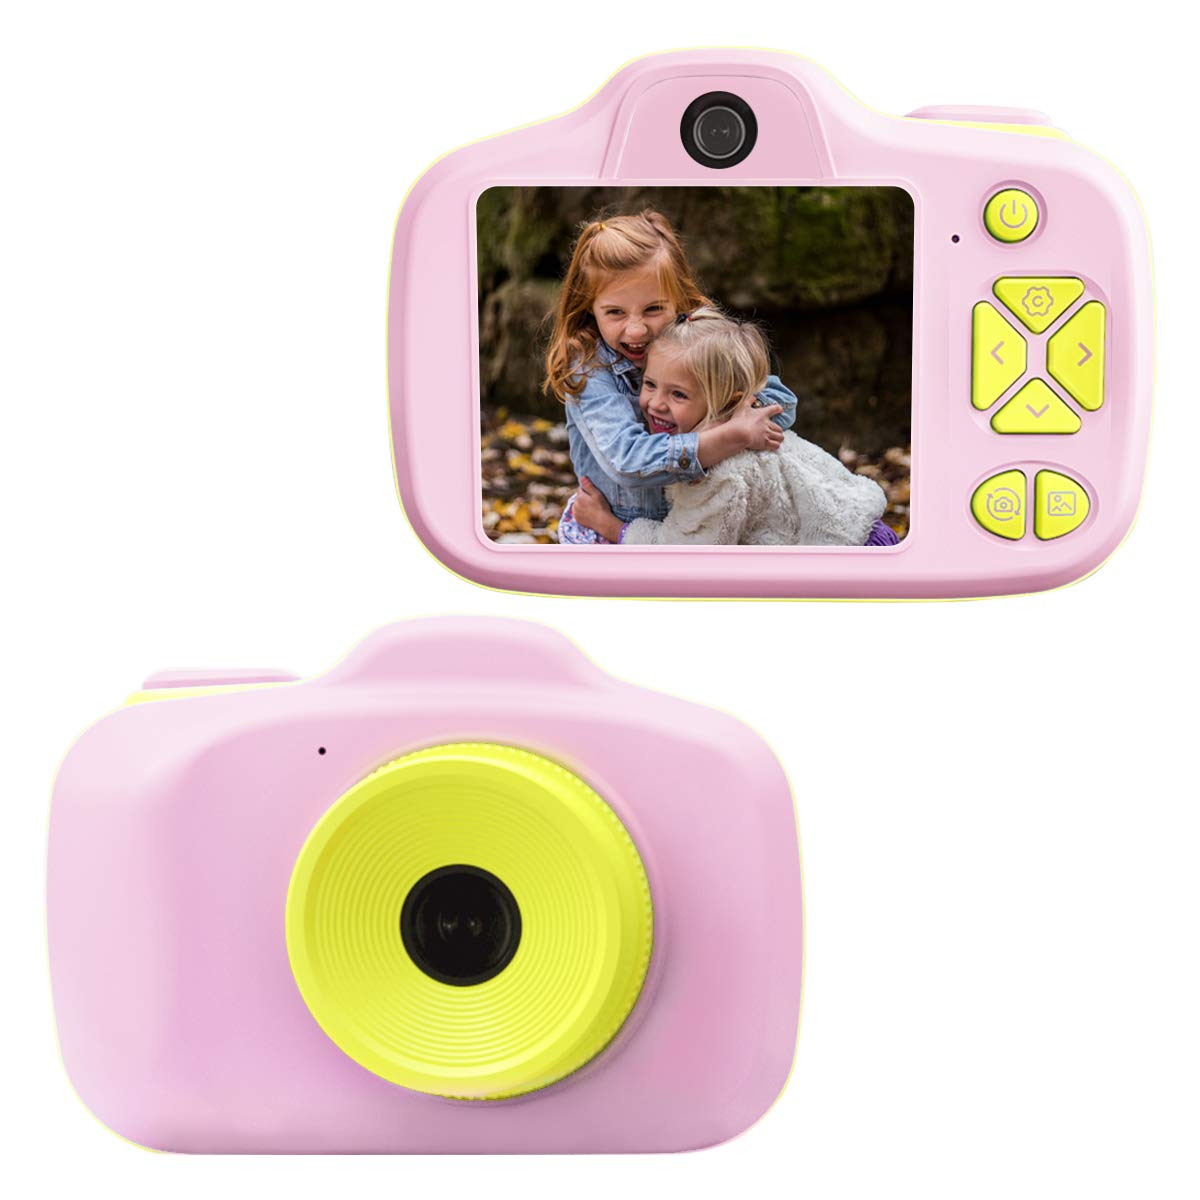 Joytrip Kids Digital Cameras Gigts for Boys HD 2.3 Inches Screen 8MP Video Camera for Kids Shockproof Children Selfie Toy Camera Mini Child Camcorder for Age 3-10 with Safe Material (Blue-Yellow)